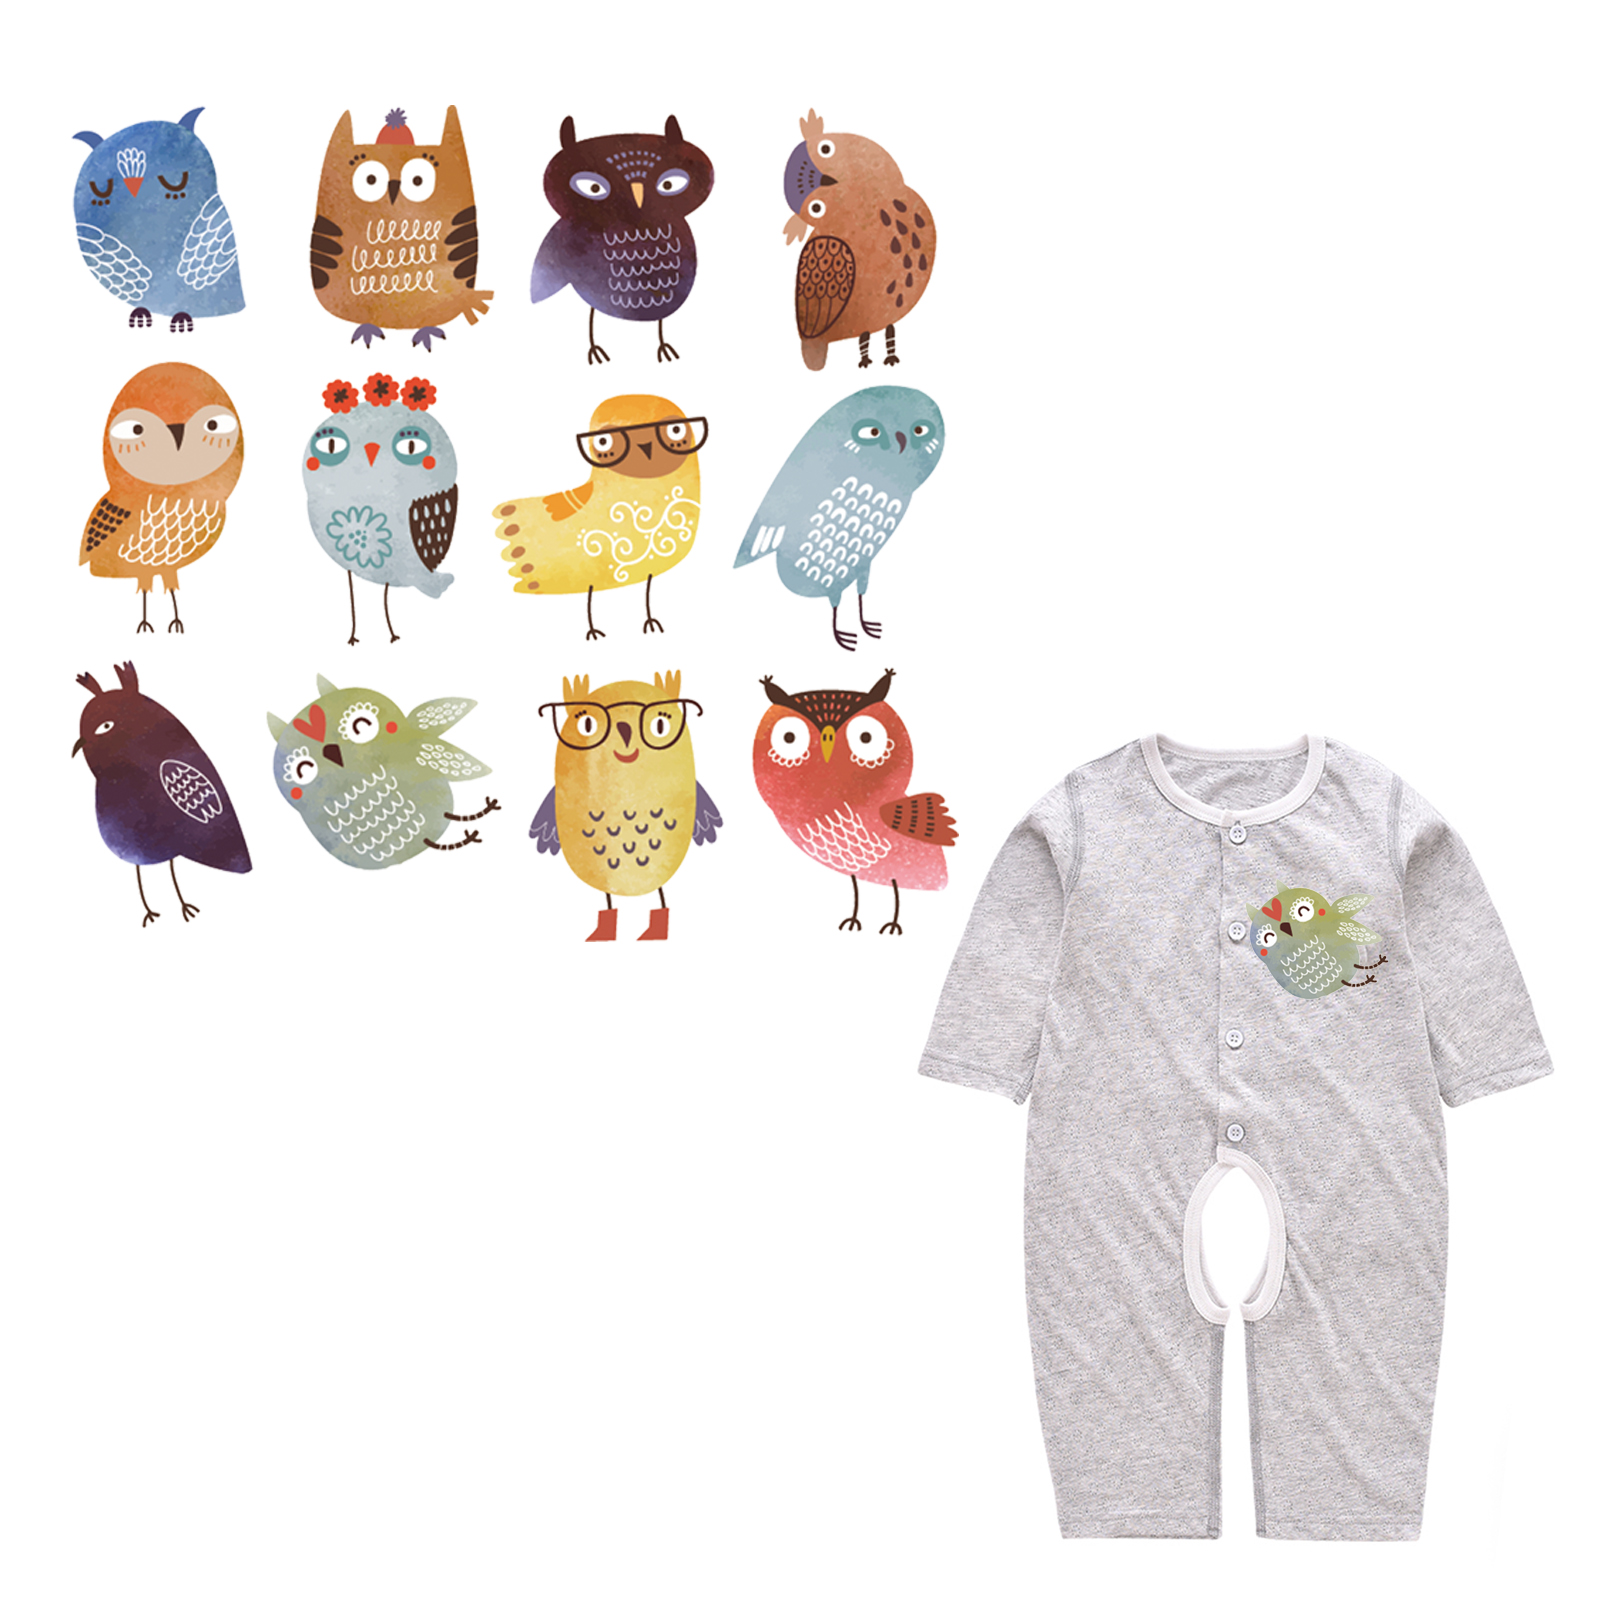 Arts,crafts & Sewing Lovely Iron On Cute Animal Patches Set For Clothes Heat Transfer Vinyl Appliqued Stickers Diy Children T-shirt Decoration Thermal Press